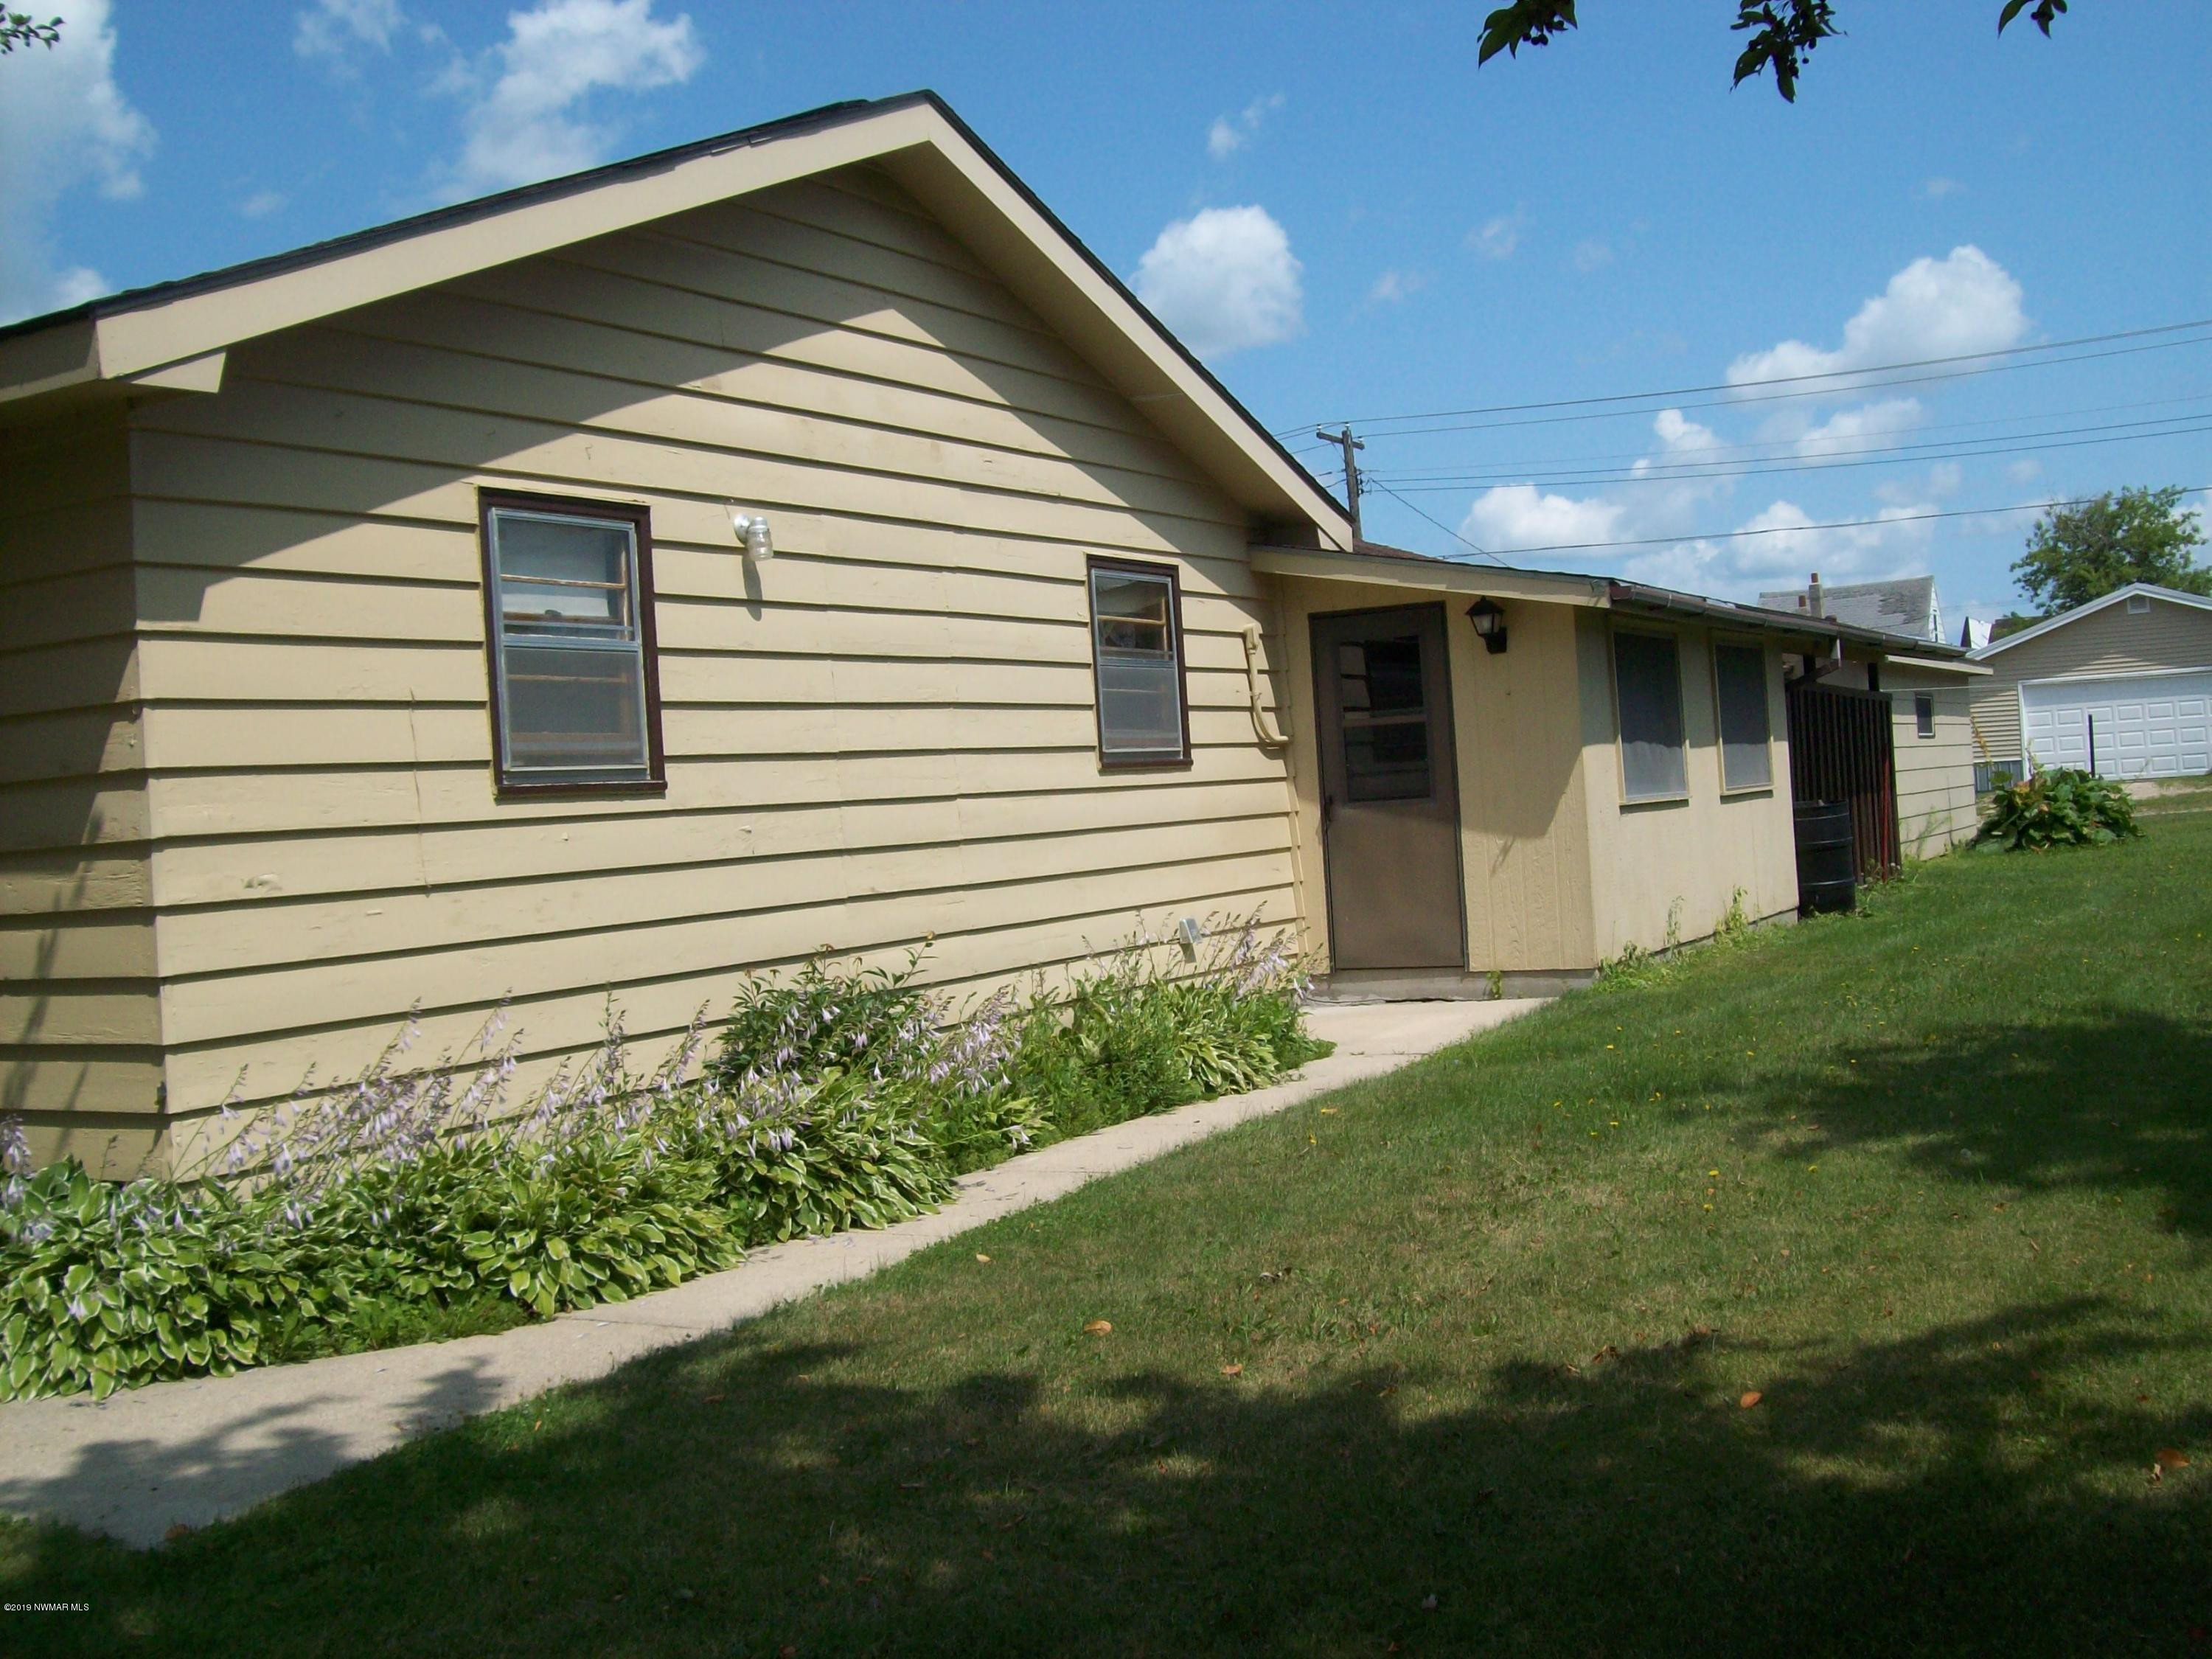 150 5th Street N, Greenbush, MN 56726